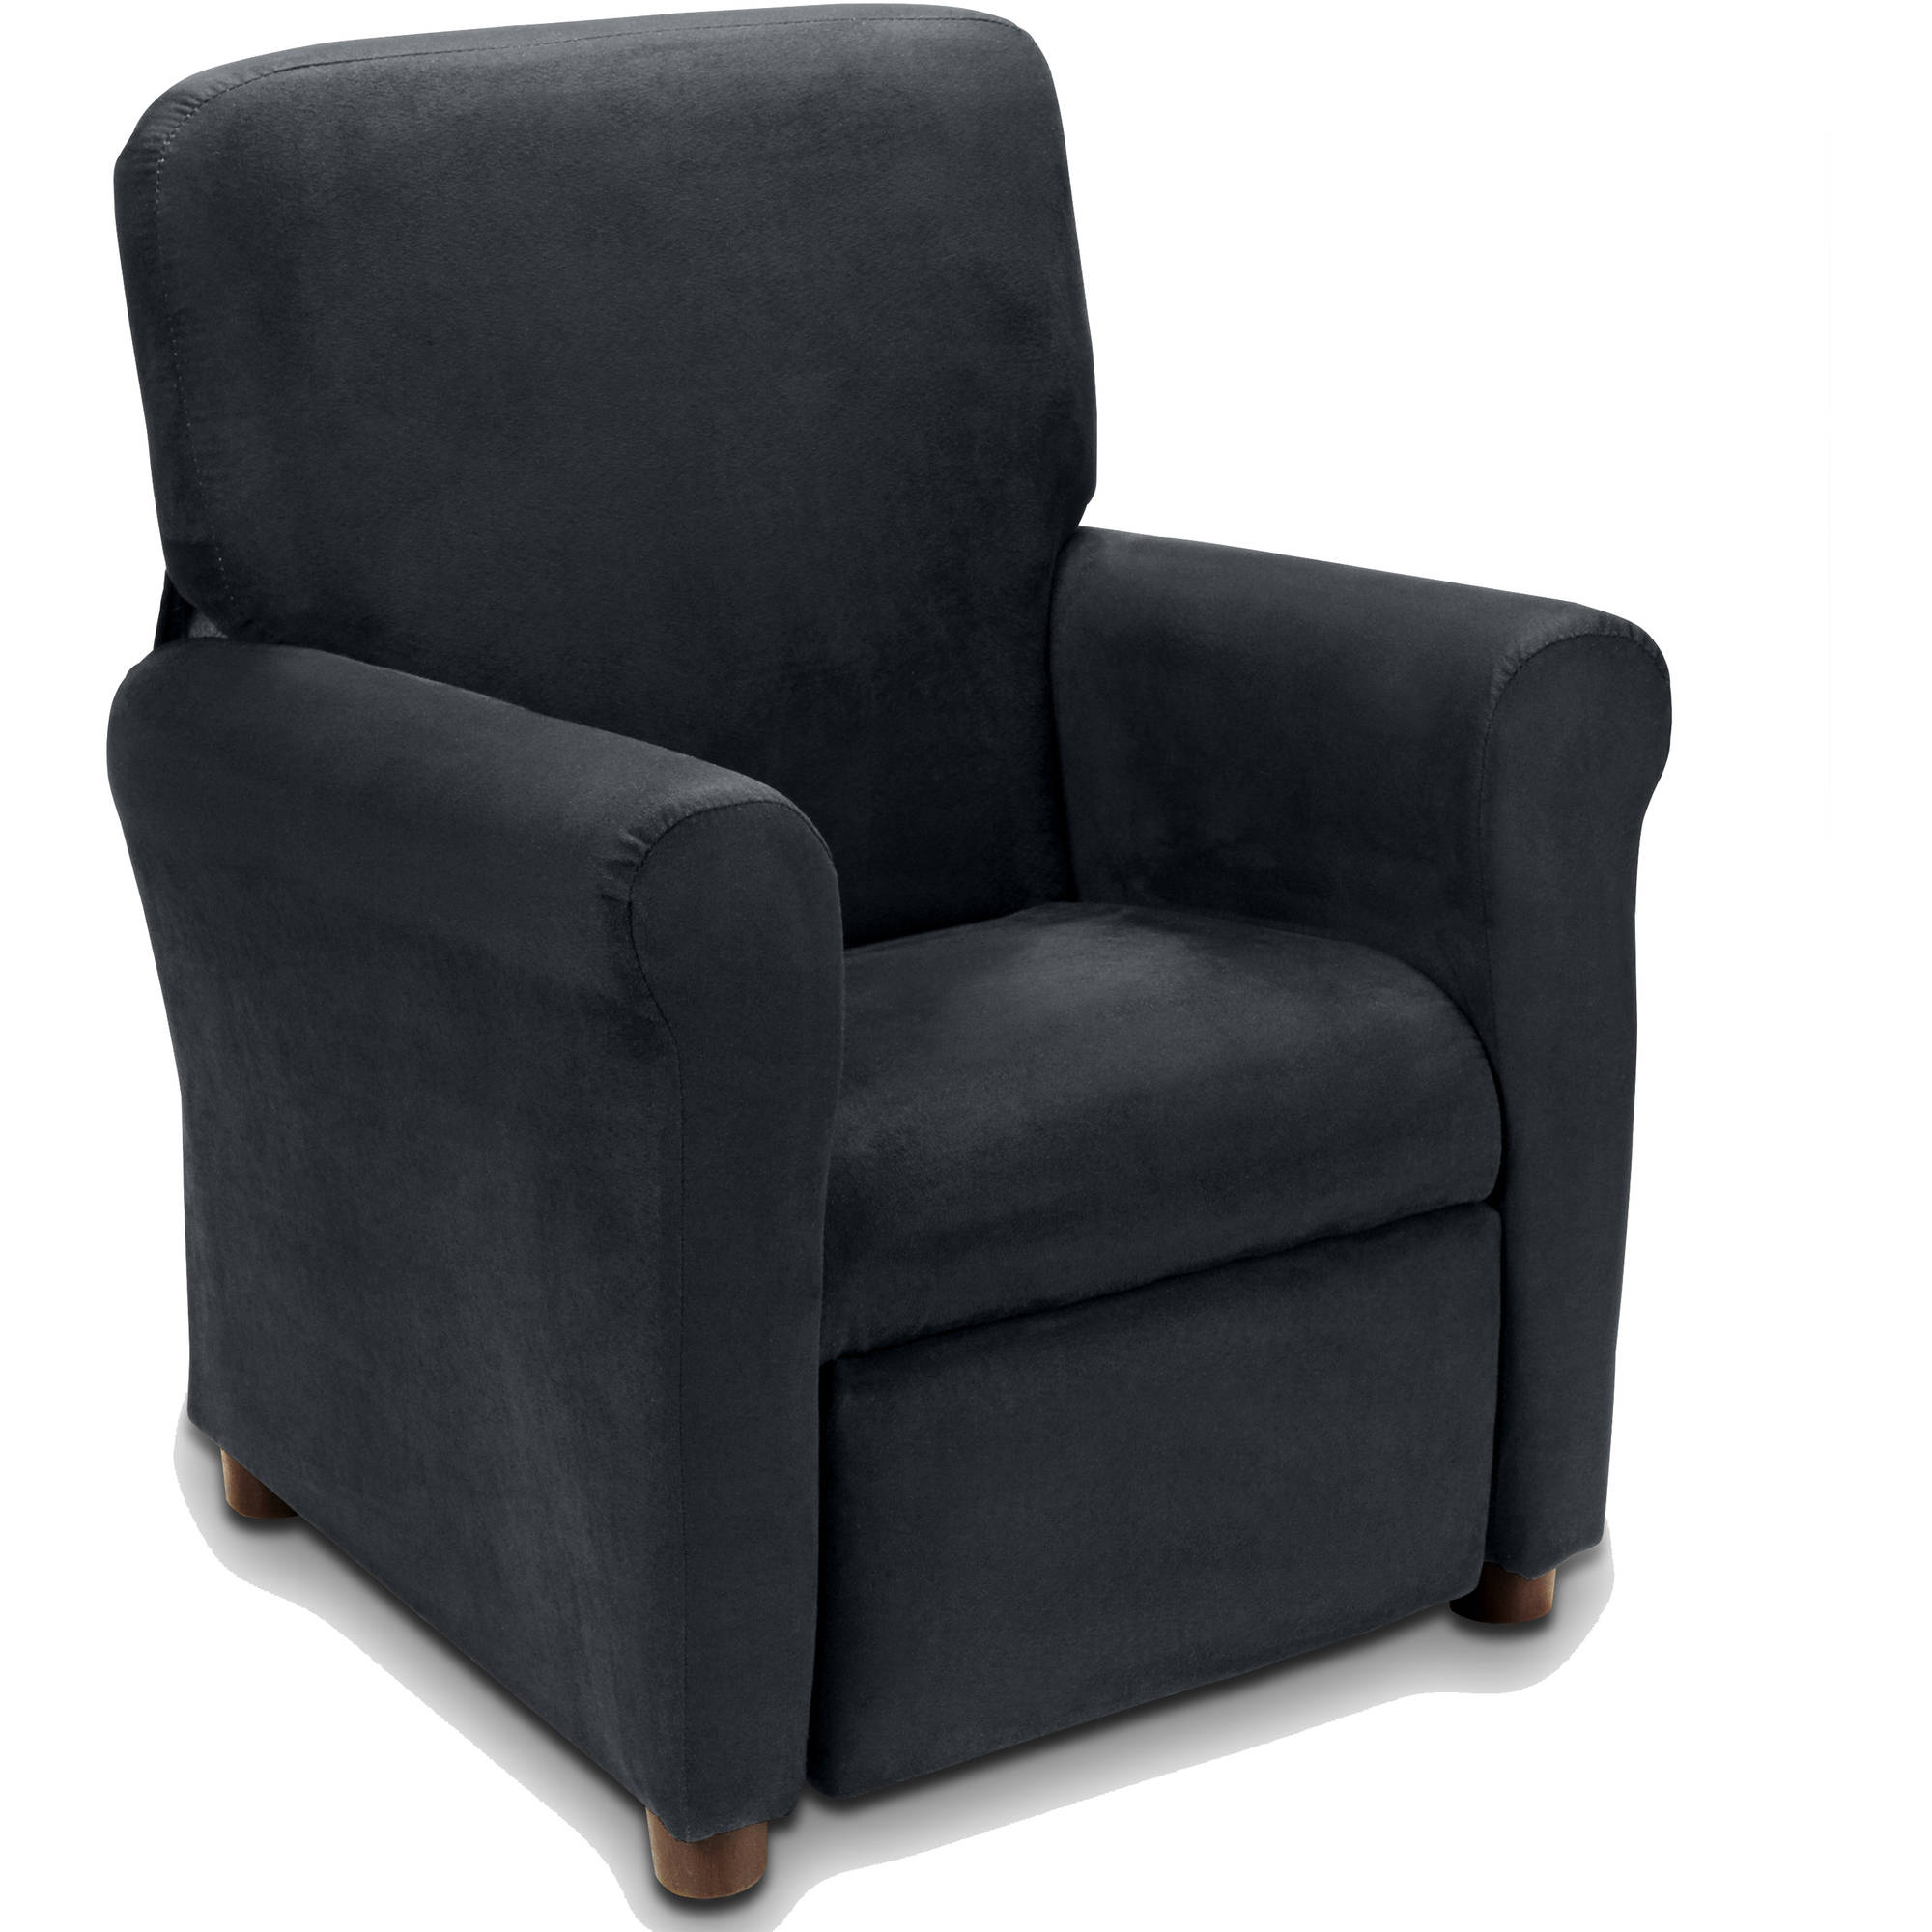 Crew Furniture Urban Child Recliner - Available in Multiple Colors